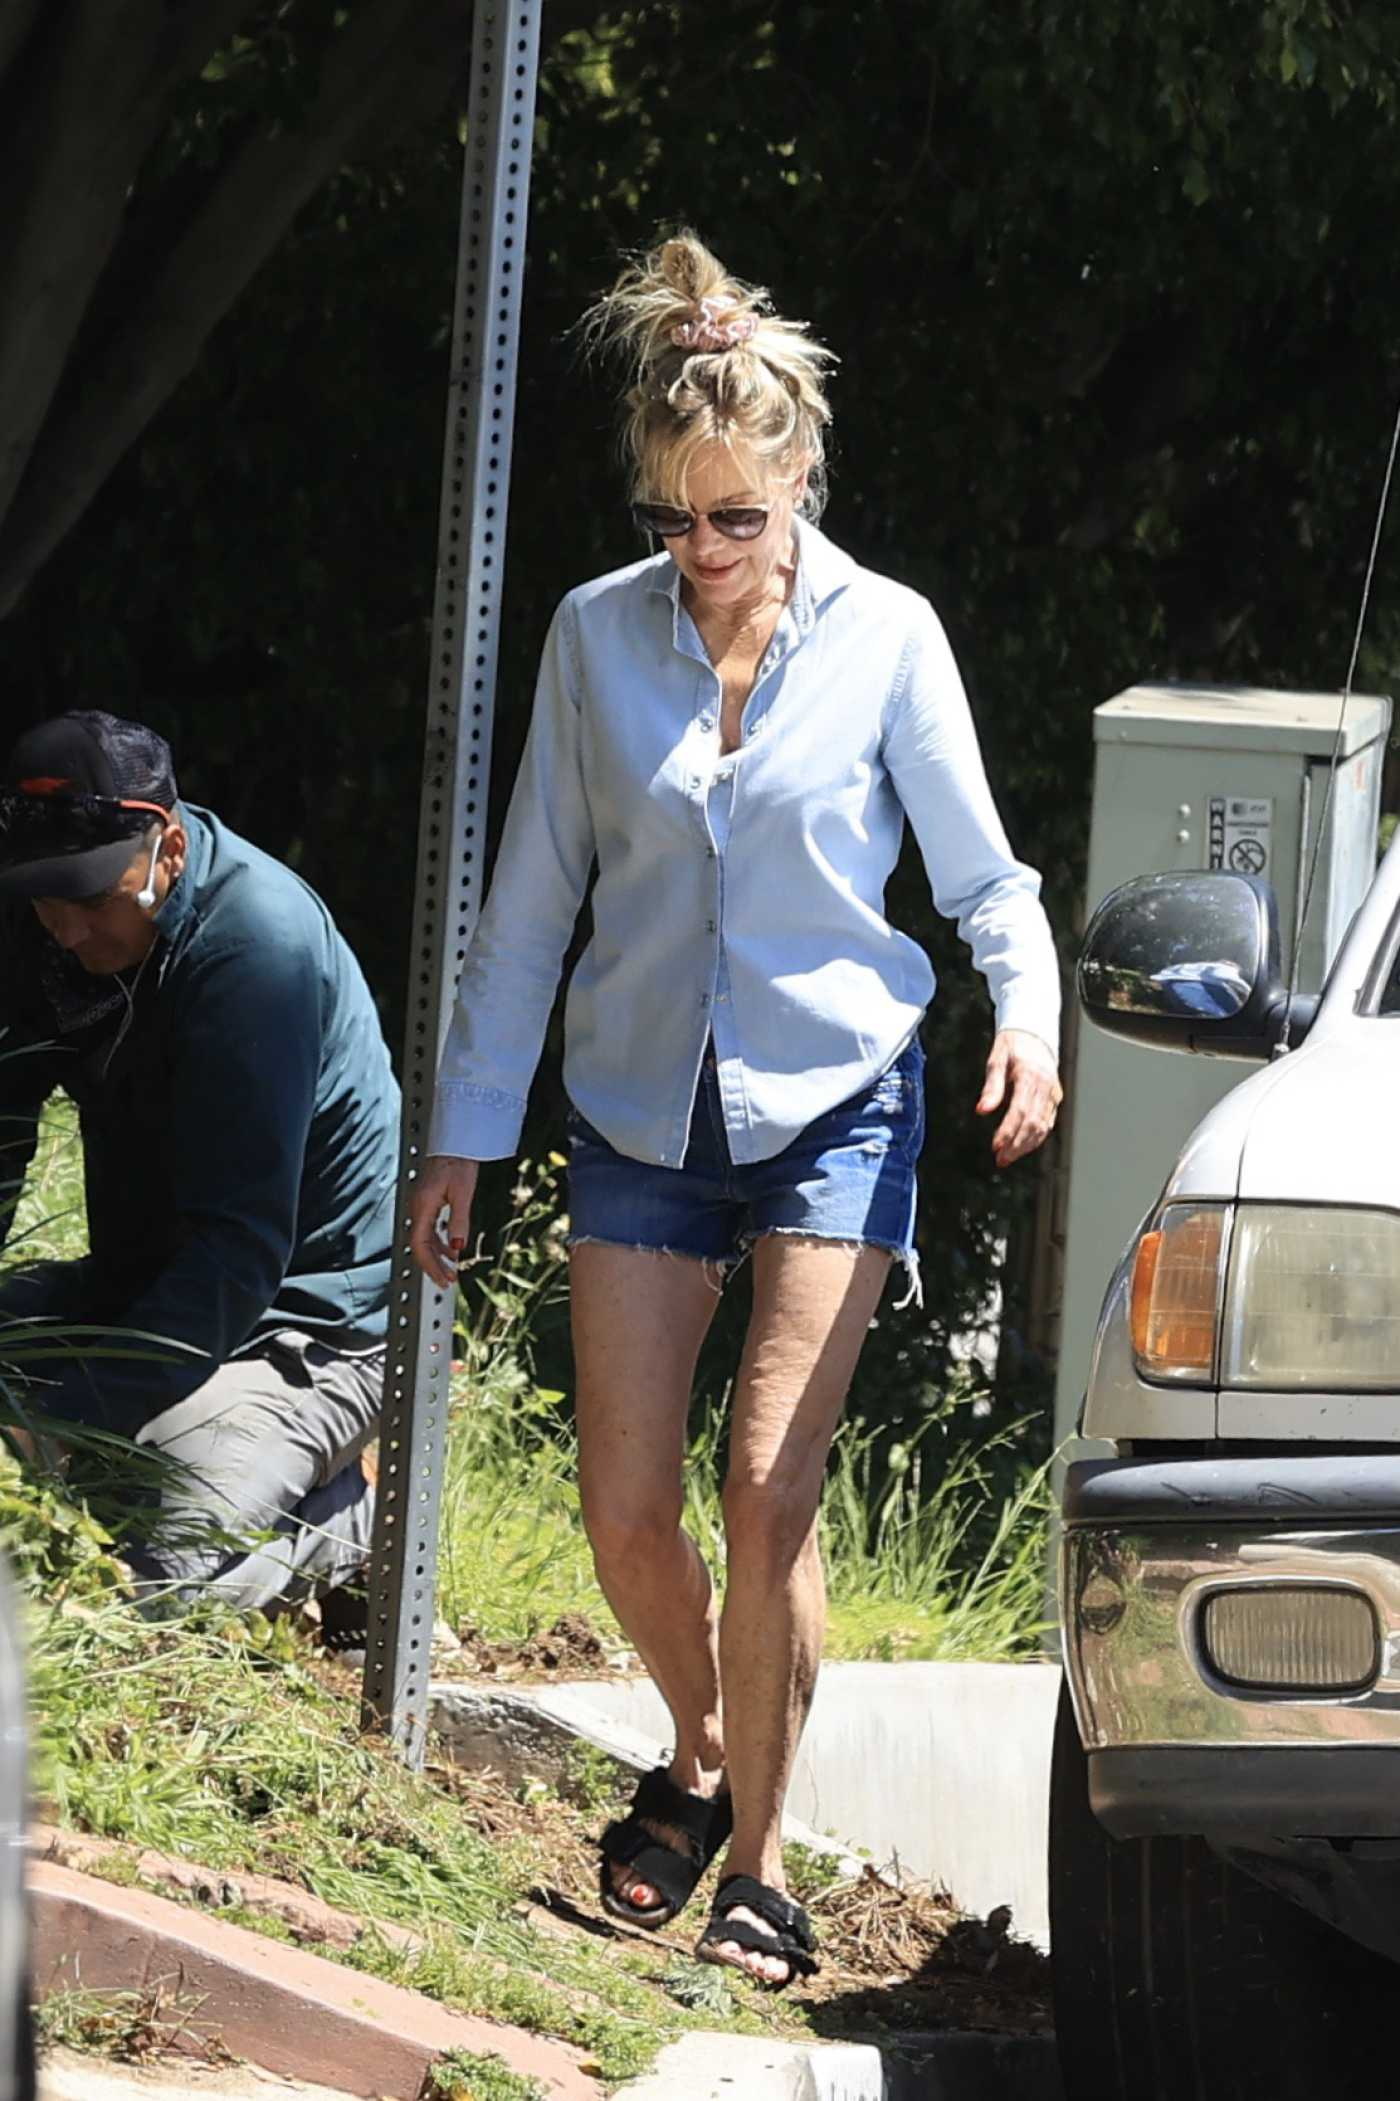 Melanie Griffith in a Blue Denim Shorts Was Seen During the COVID-19 Lockdown in Los Angeles 04/25/2020